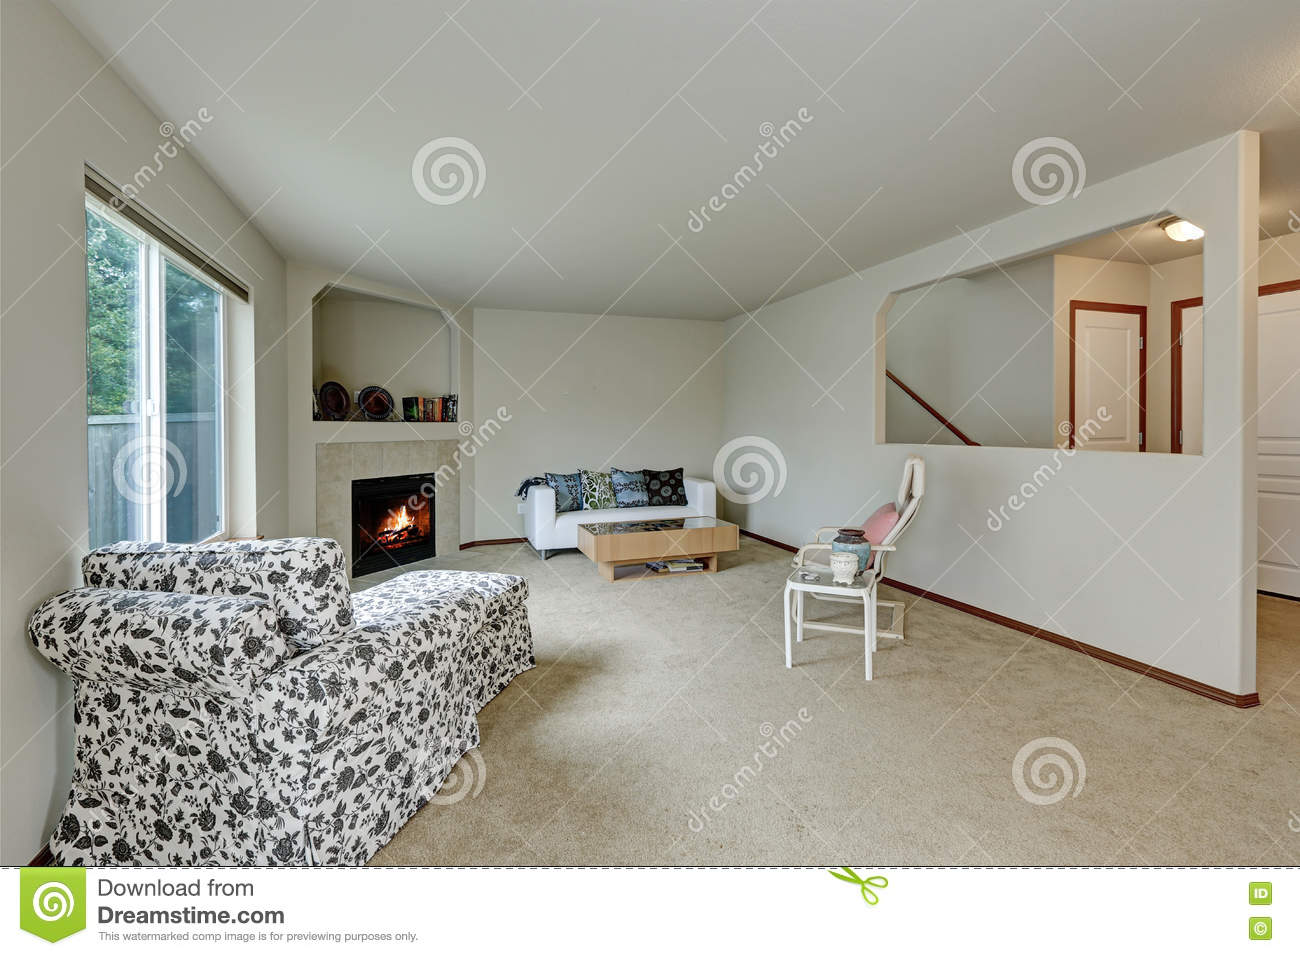 Light Tones Elegant Living Room With Fireplace In The Corner Stock Photo